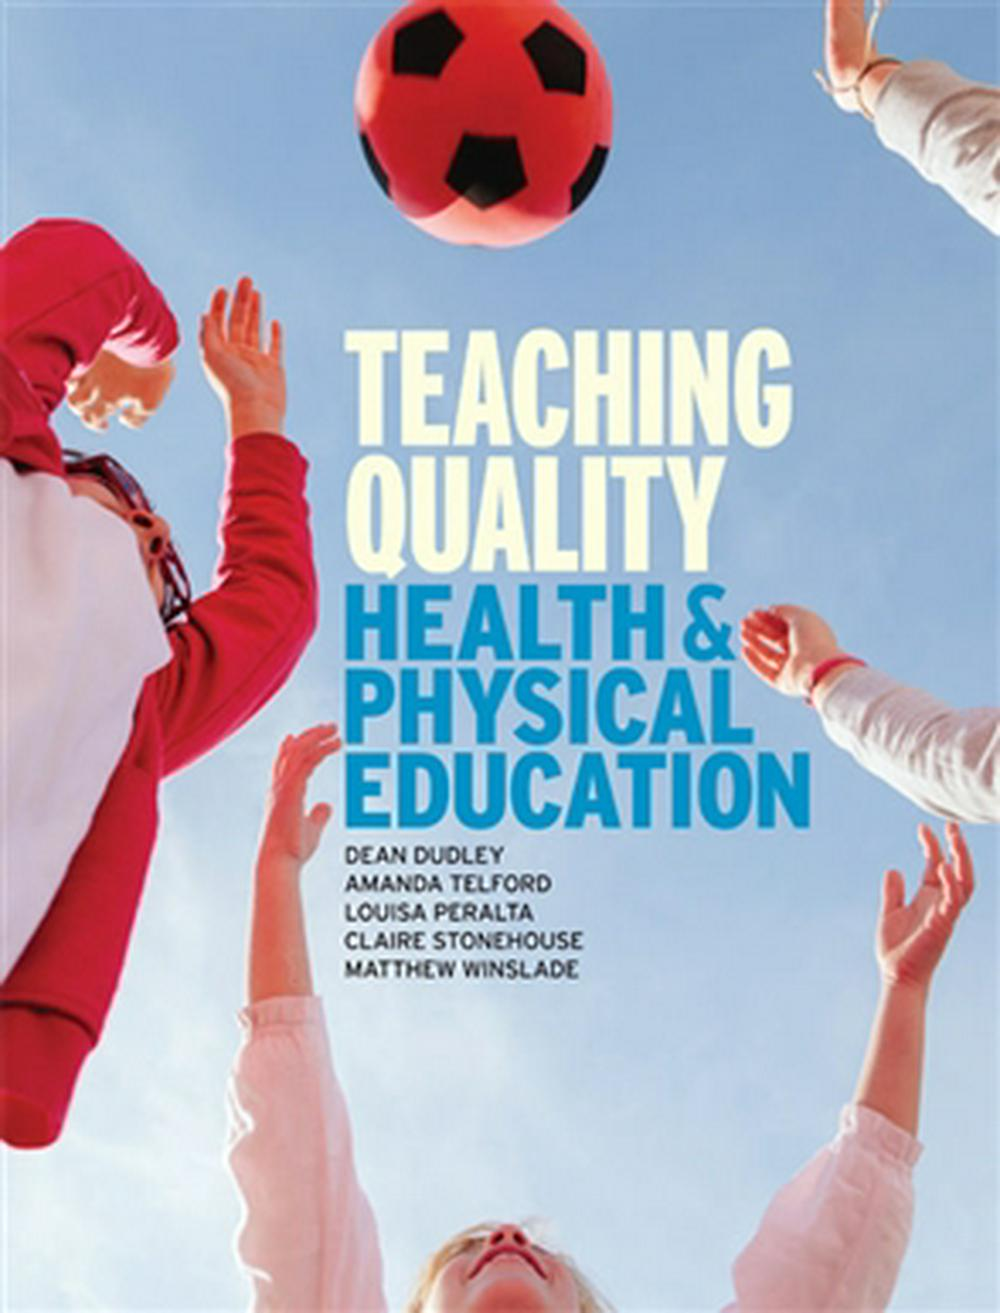 Teaching Quality Health and Physical Education by Dean Dudley,Amanda Telford,Claire Stonehouse,Louisa Peralta, ISBN: 9780170387019